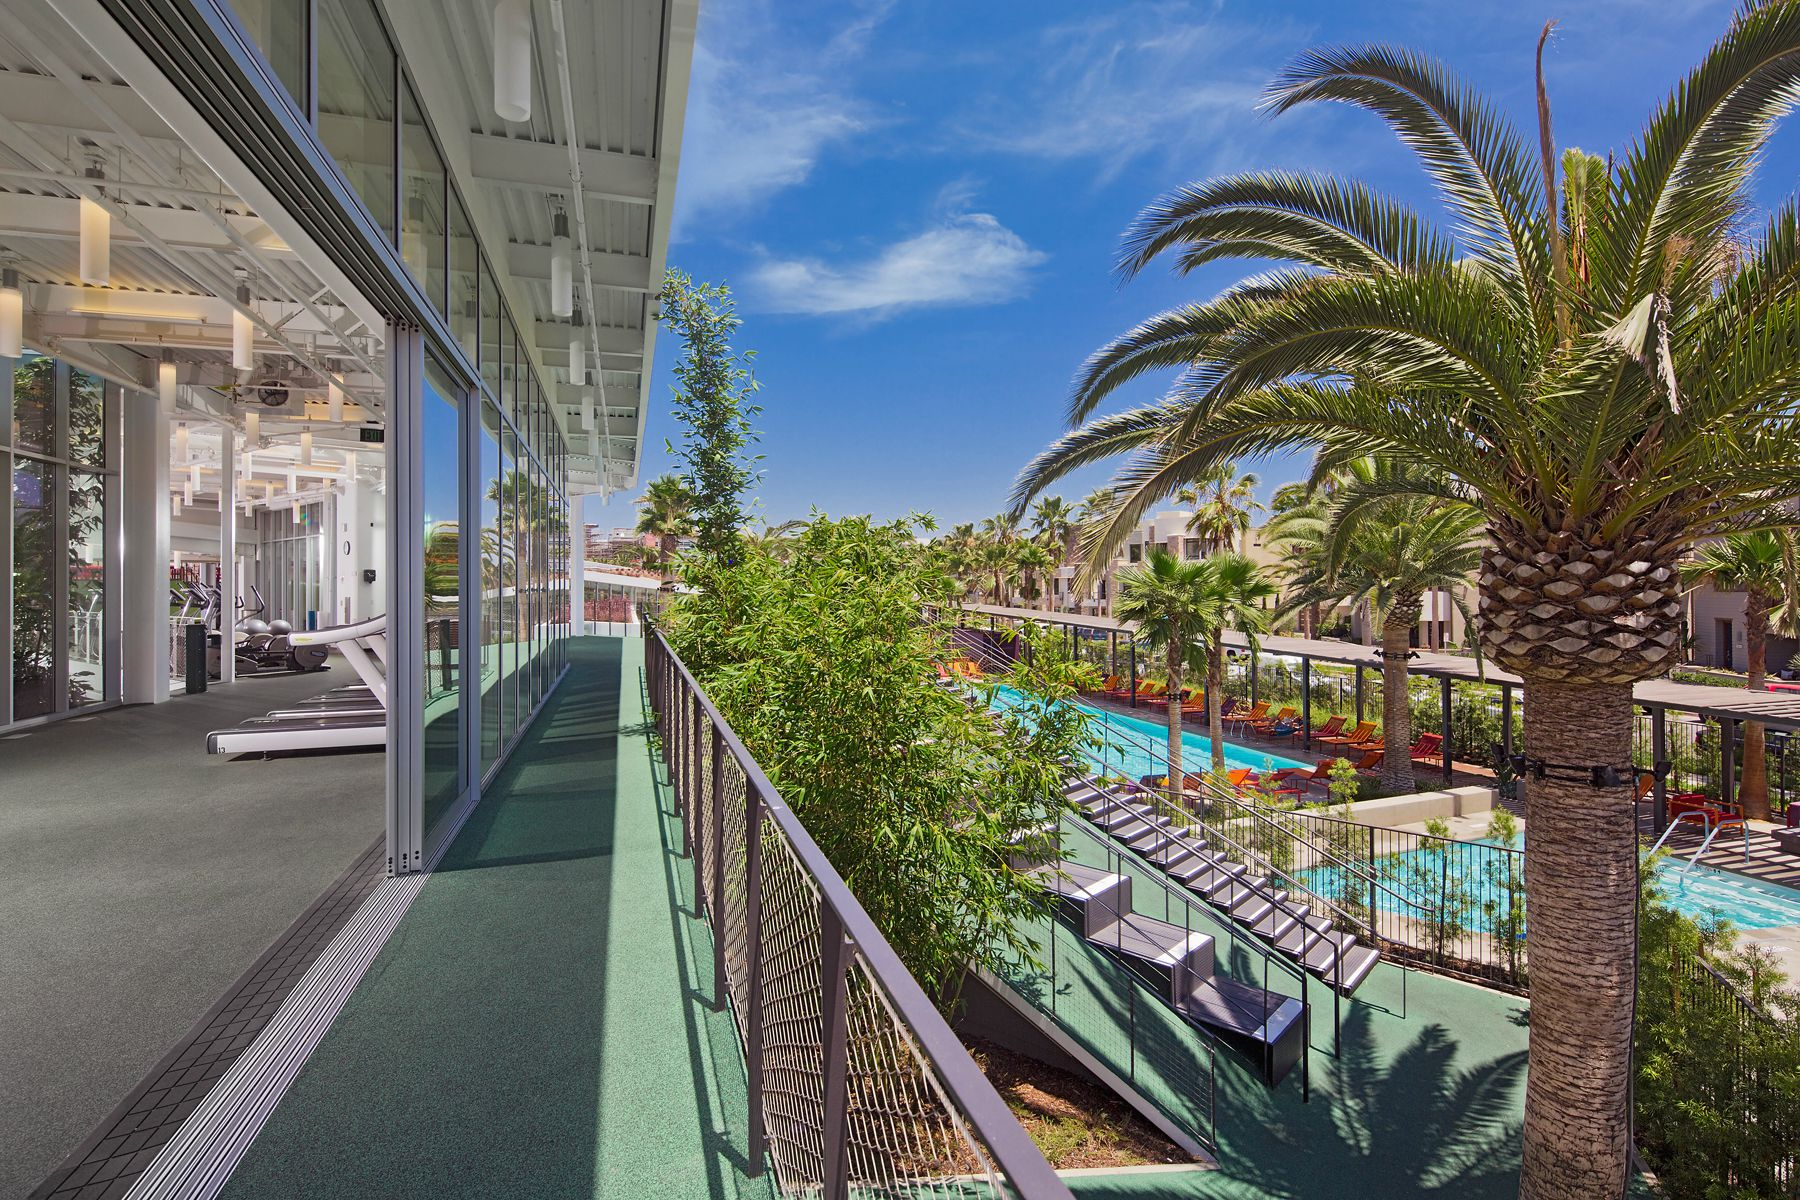 Resort Style Gym and Pool in Los Angeles New Homes for Sale